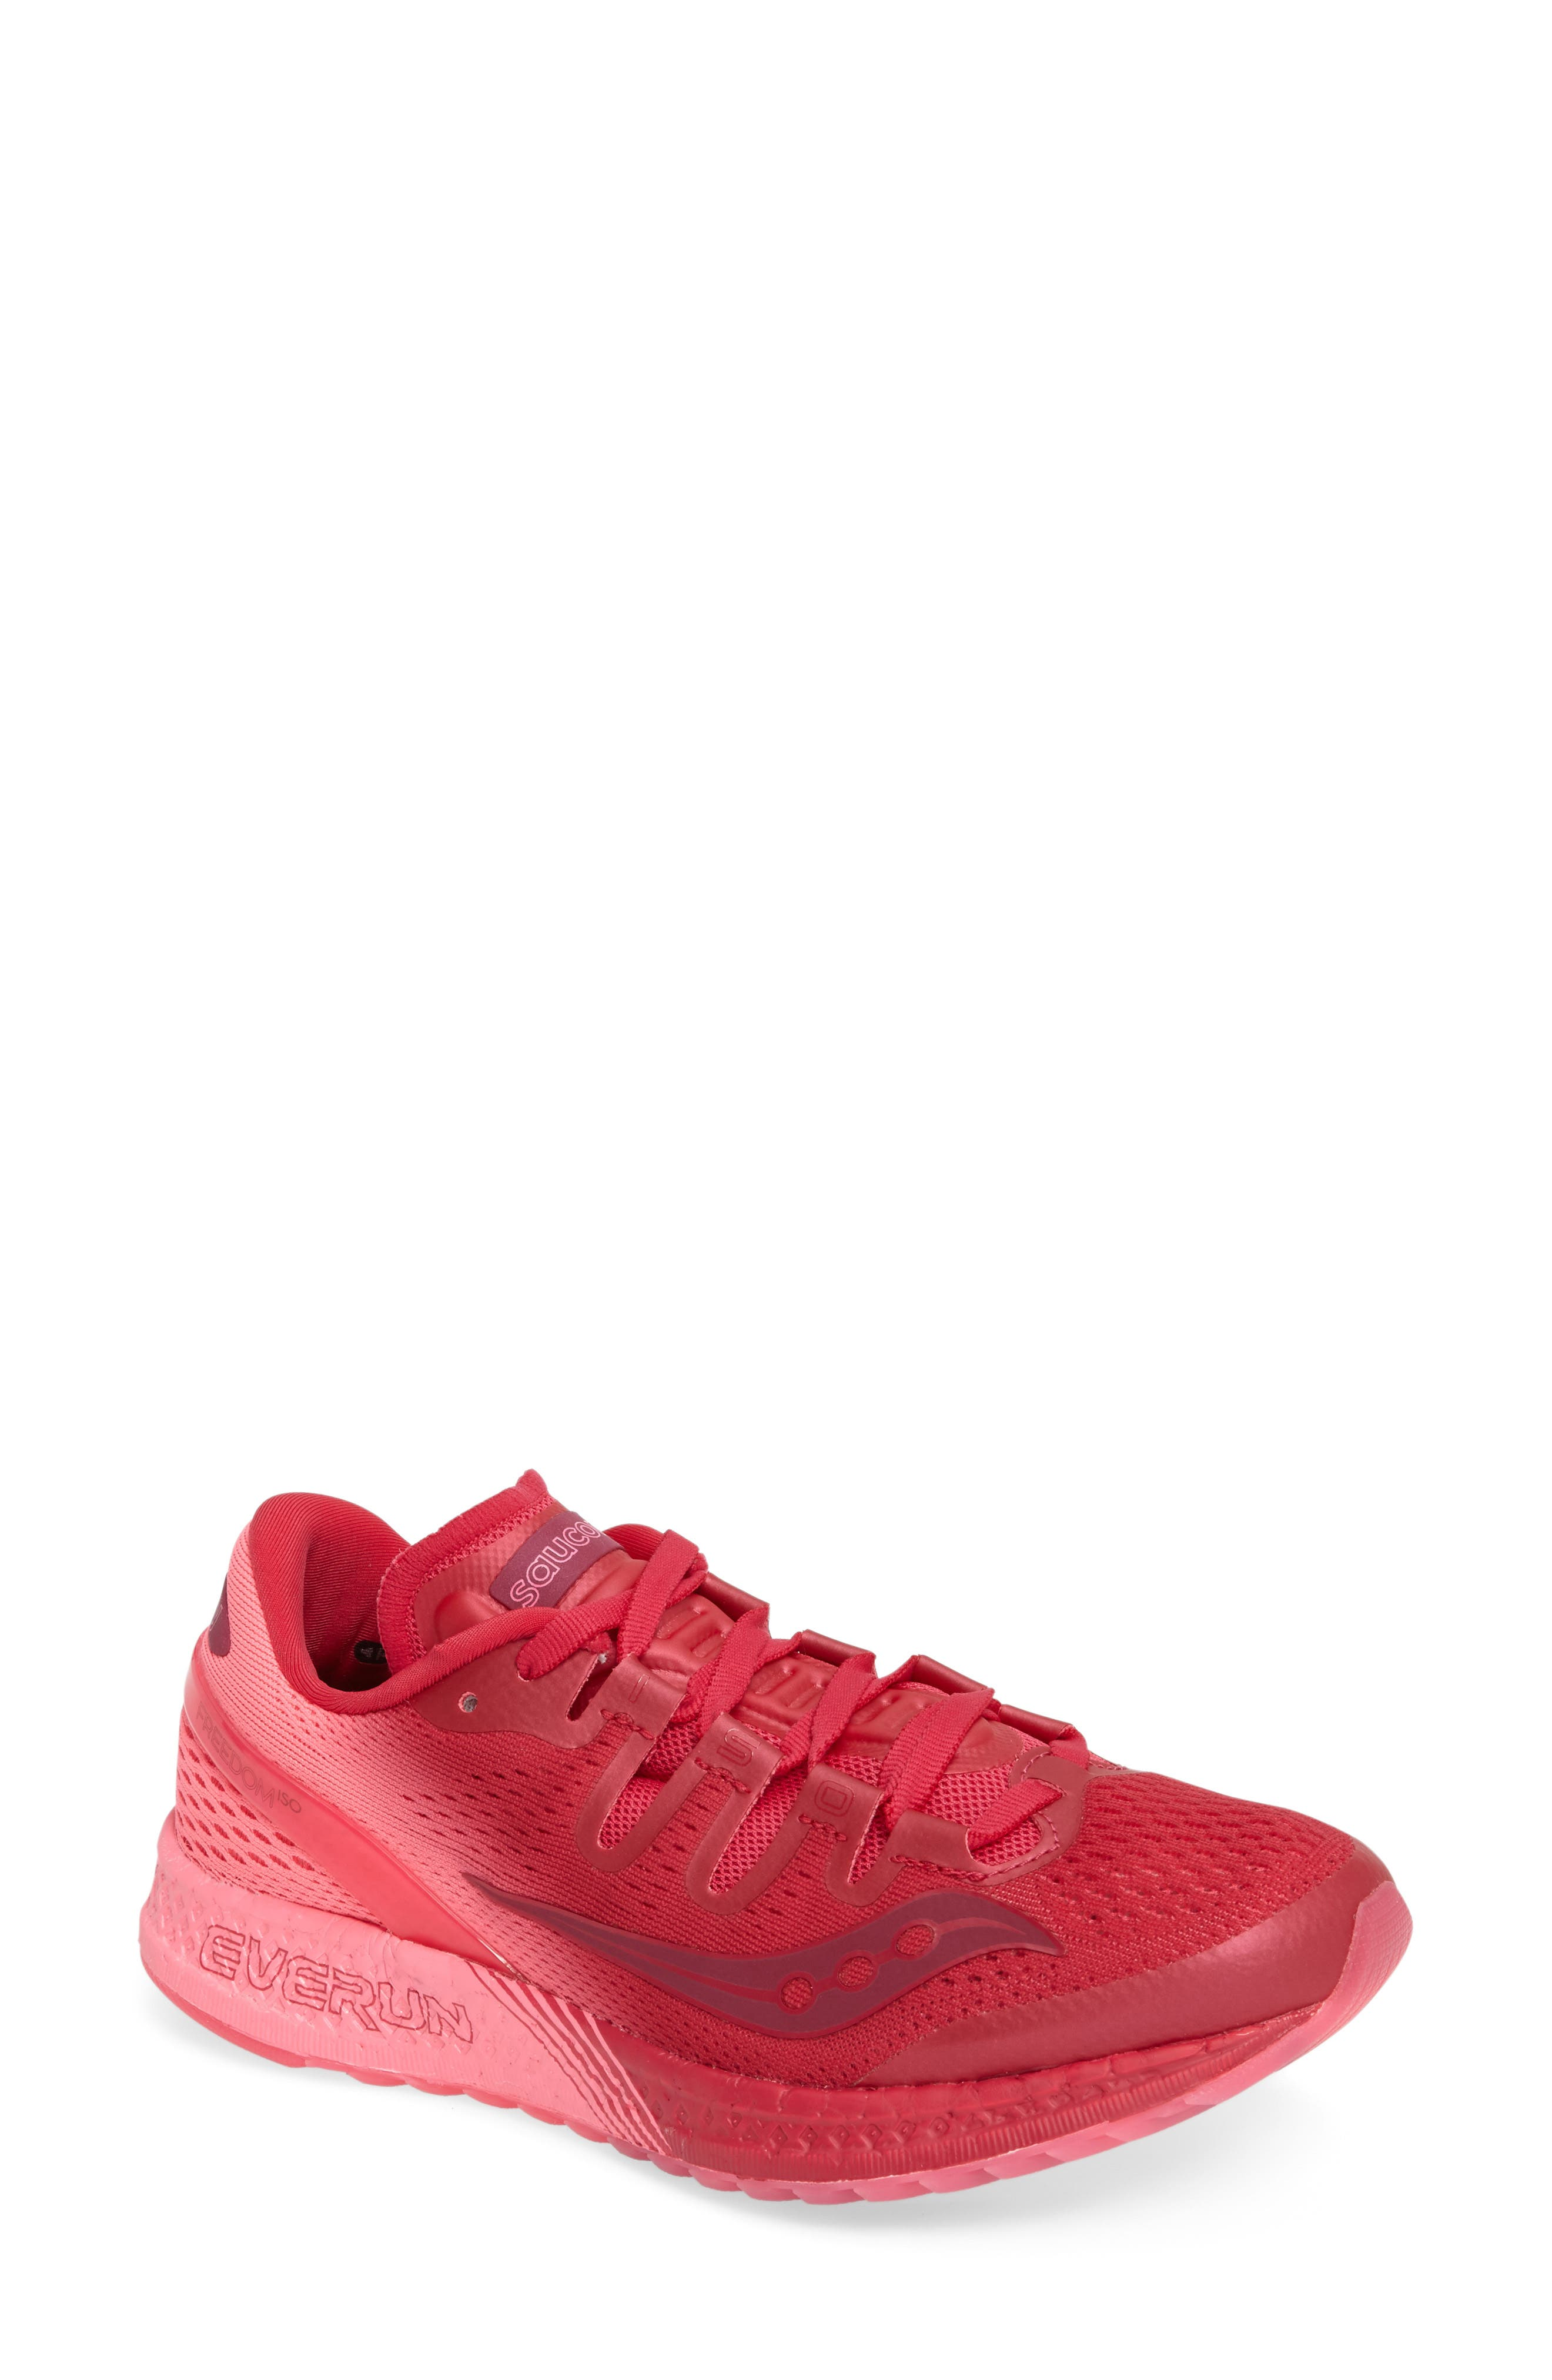 Freedom ISO Running Shoe,                             Main thumbnail 3, color,